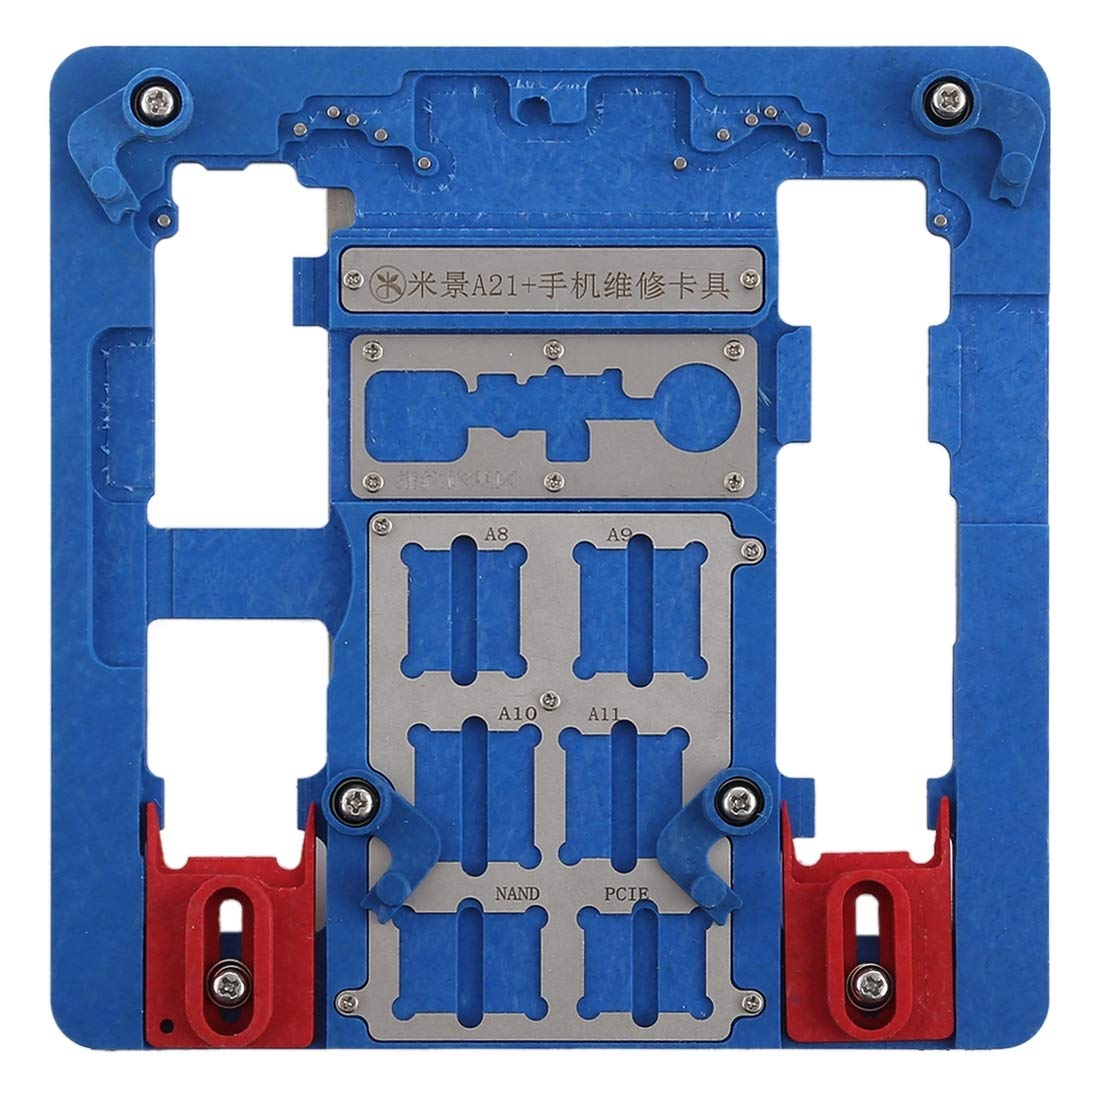 Professional Cell Phone Accessory Kits Professional A21 Phone Motherboard Repairing Fixing Holder for iPhone 8 Plus / 8/7 Plus / 7 / 6s Plus / 6s / 6 Plus / 6 / 5s by DINGGUANGHE-PHONE REPAIR TOOL